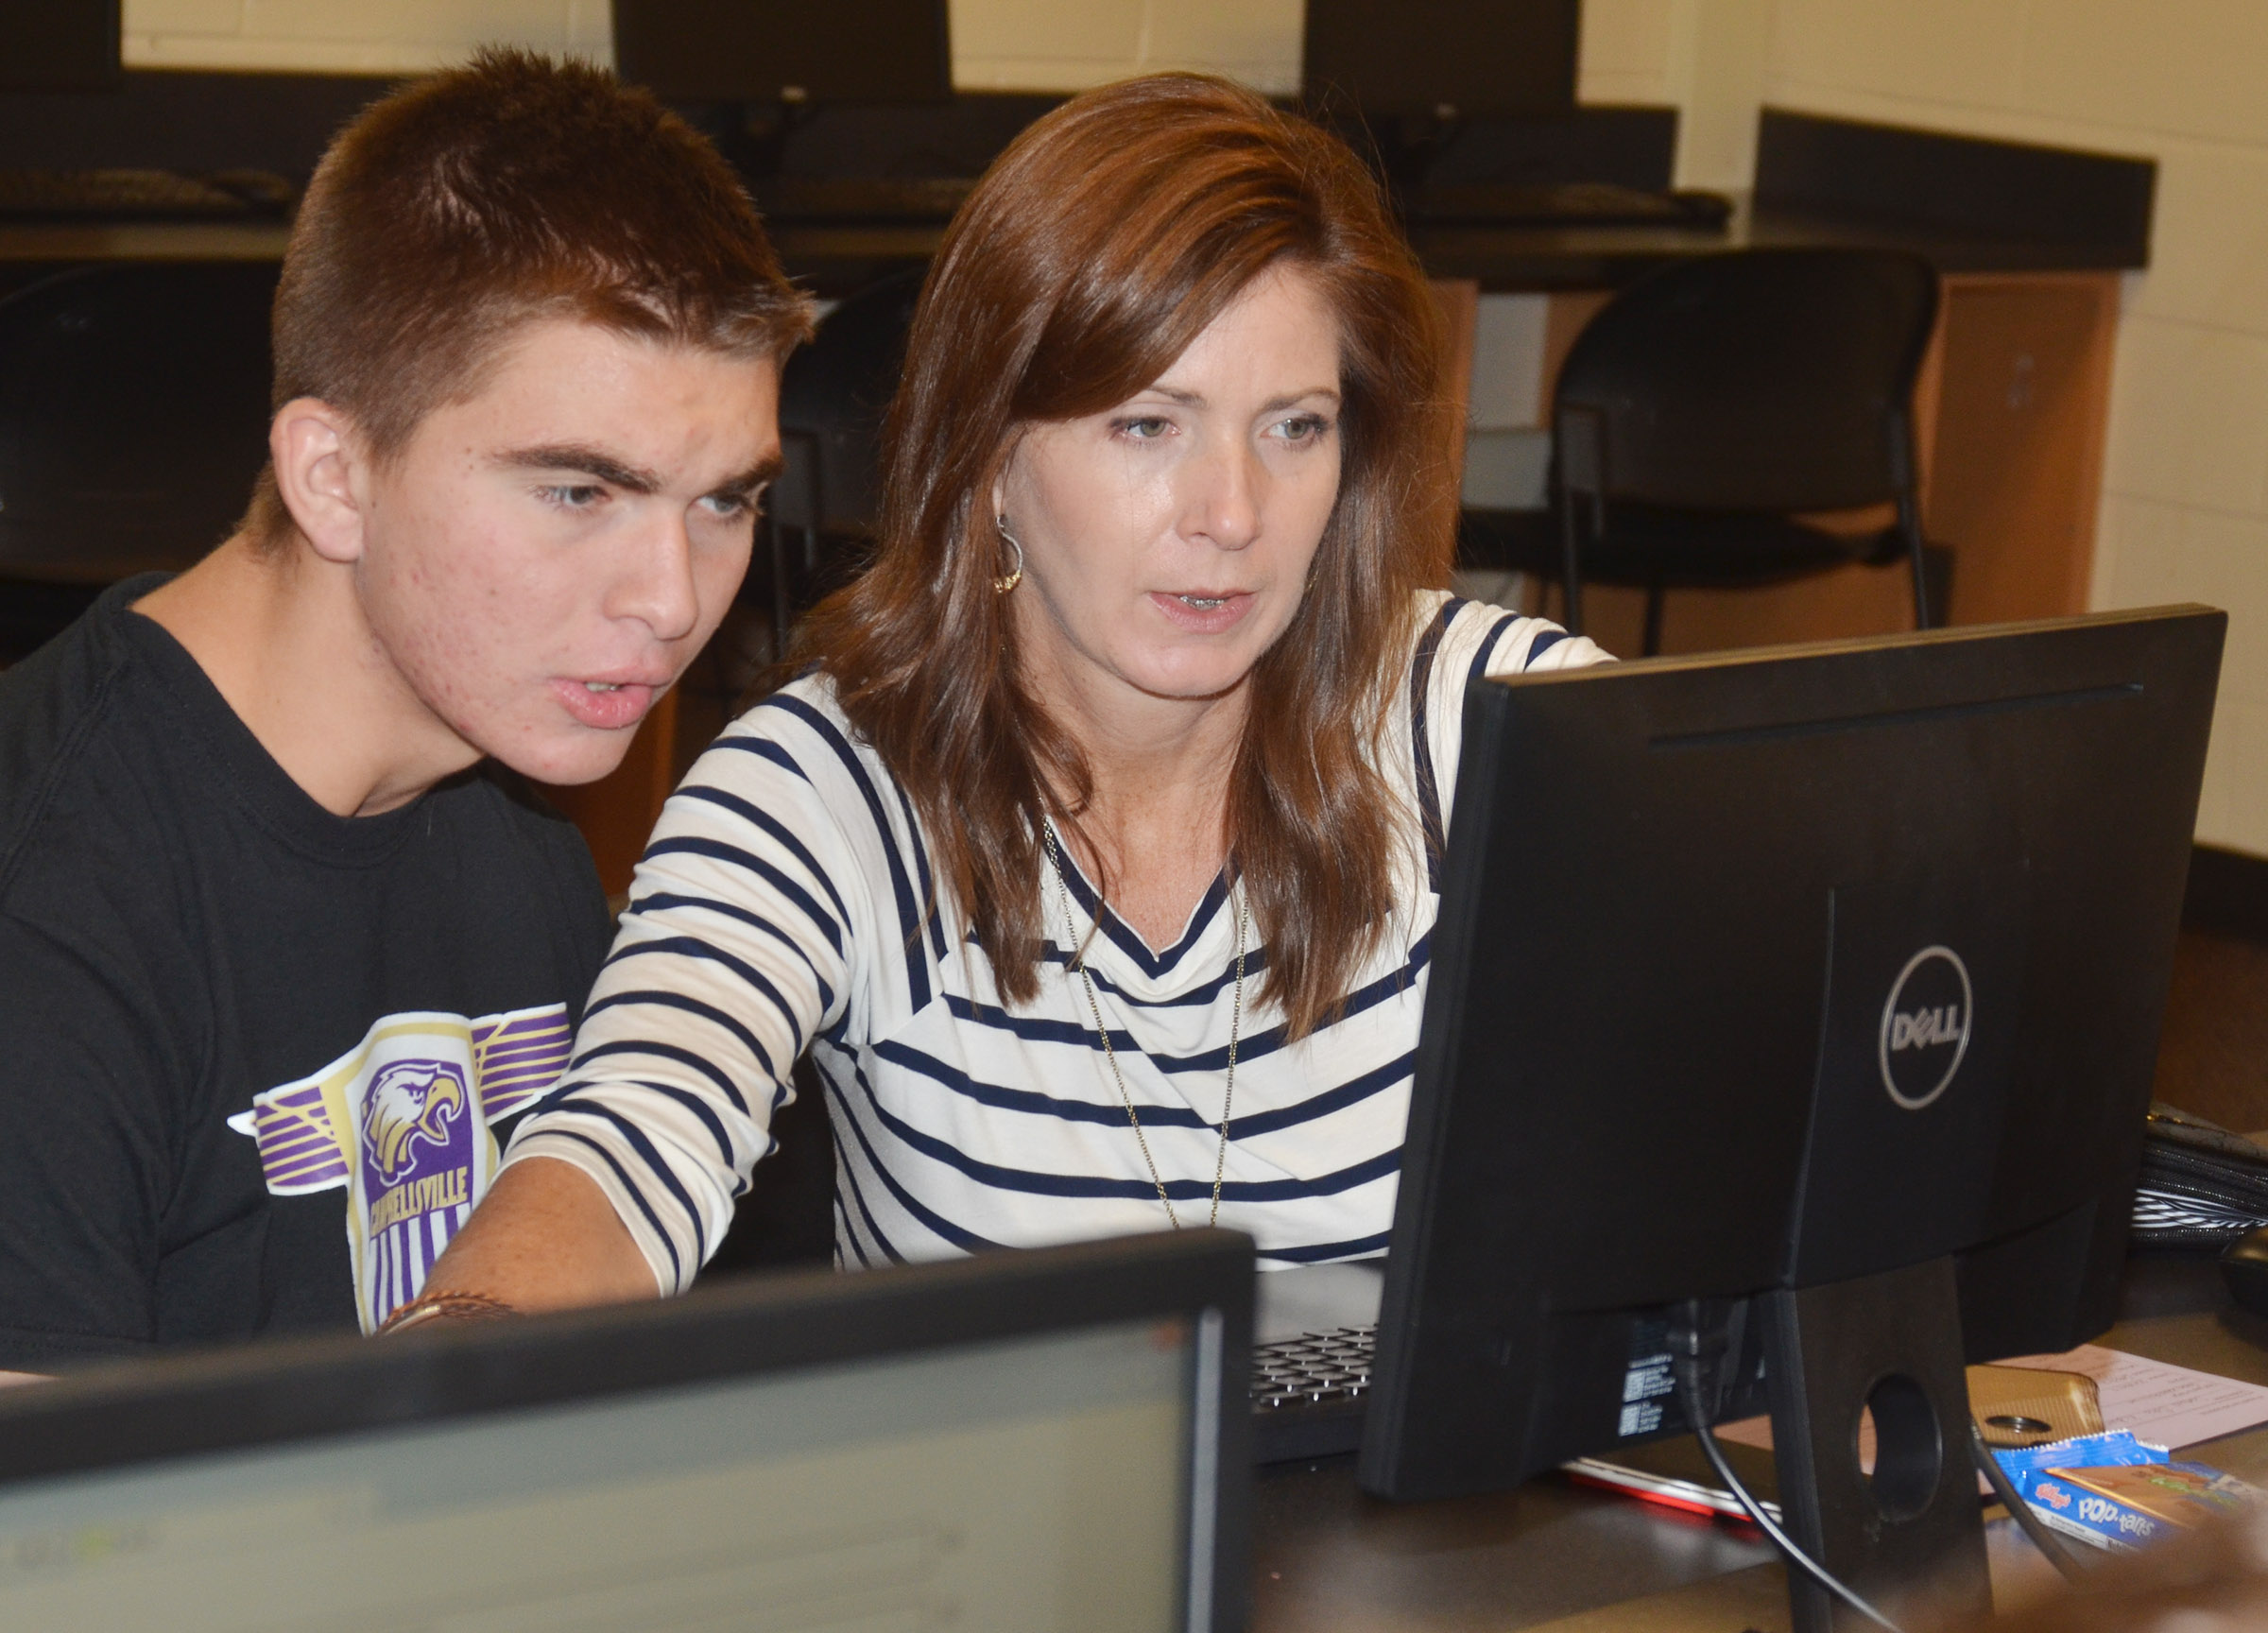 CHS senior Cass Kidwell completes his FAFSA, with help from his mother Christi.